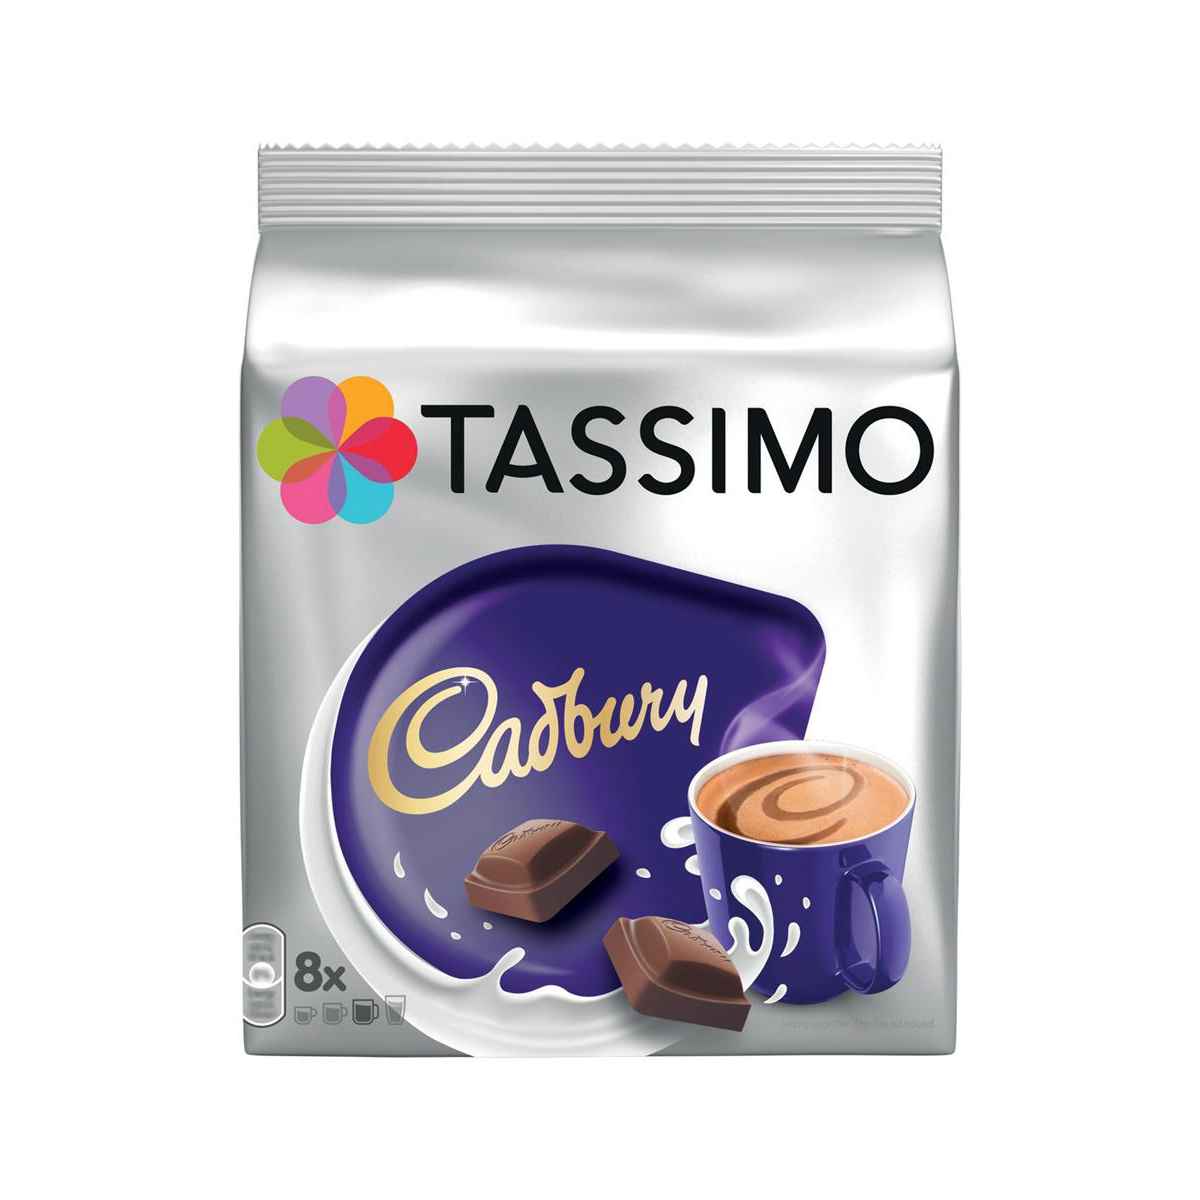 Tassimo Cadbury Hot Chocolate Pods 8 Servings Per Pack Ref 4031638 Pack 5 x 8